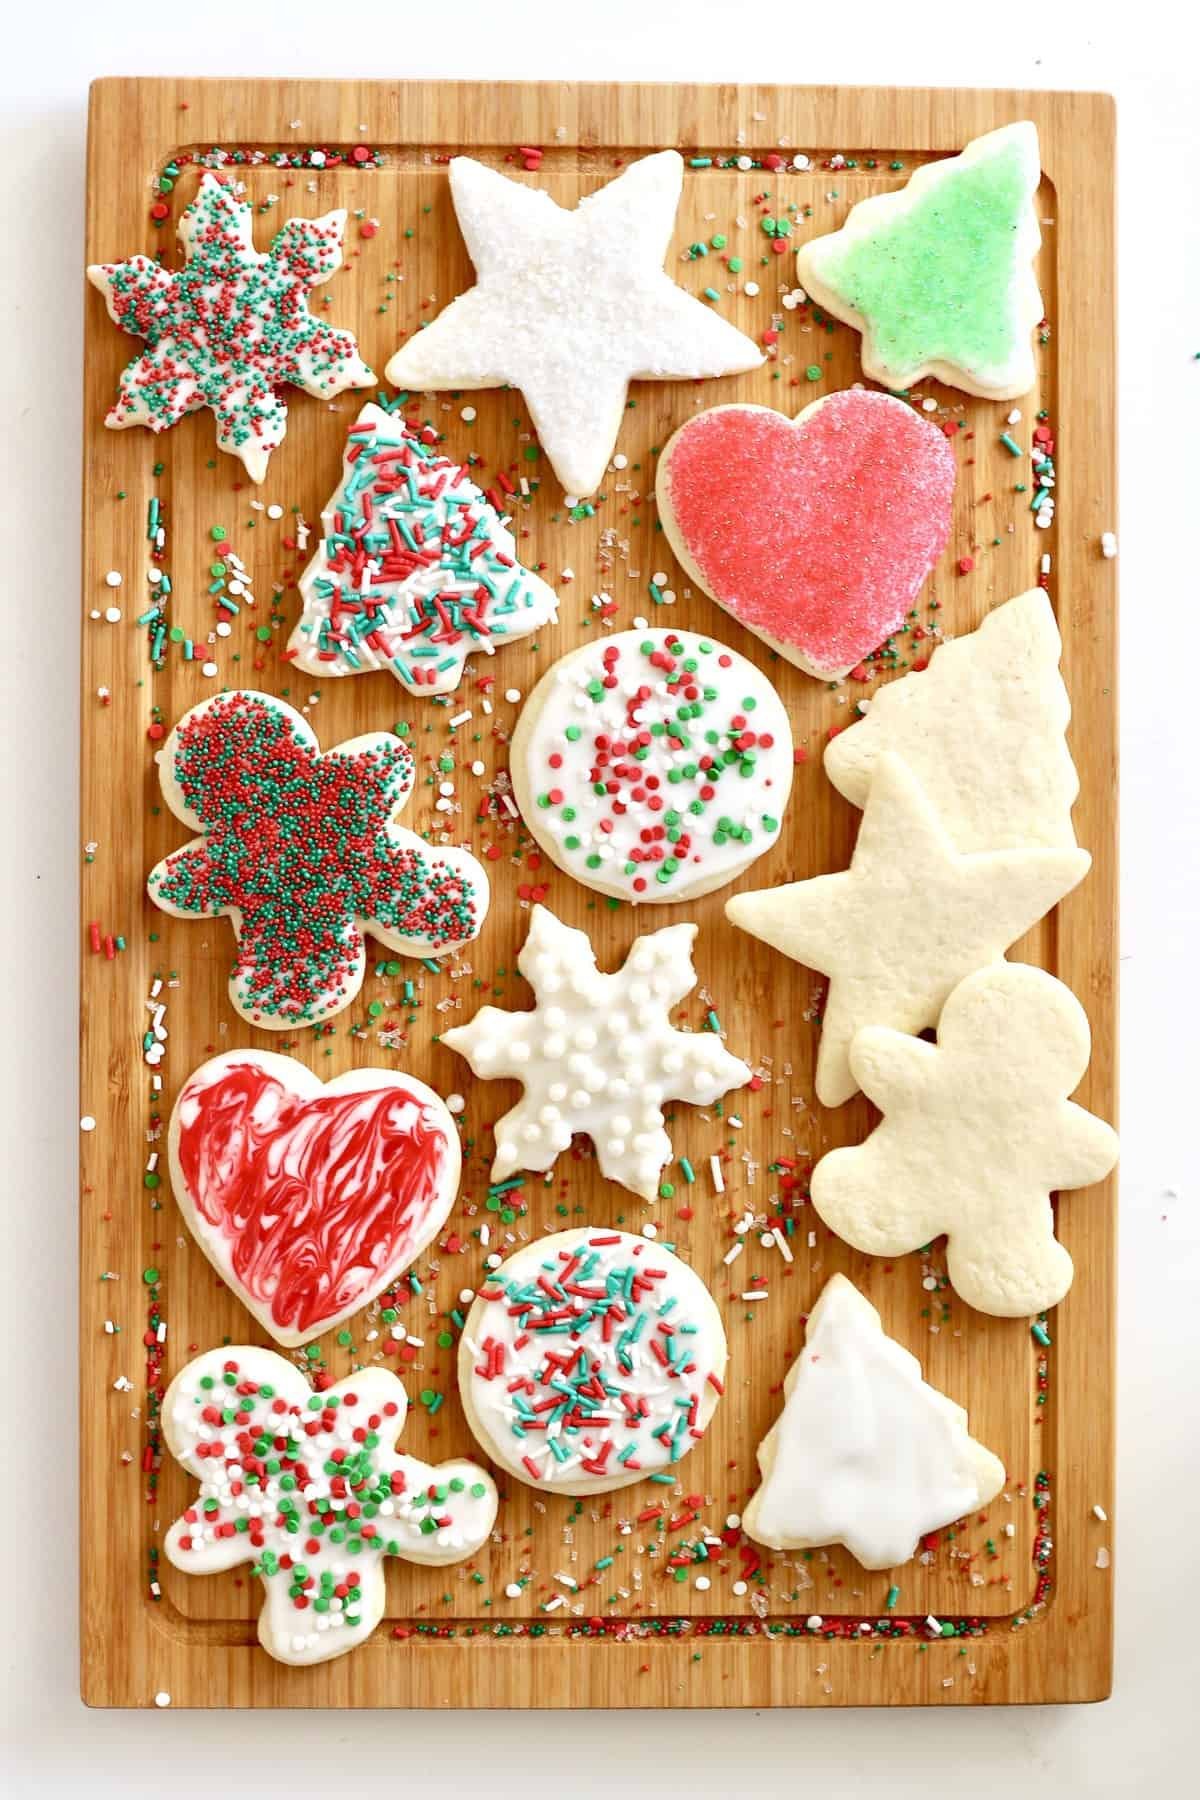 Easy No-Chill Cut-Out Sugar Cookies from TheBakerMama.com